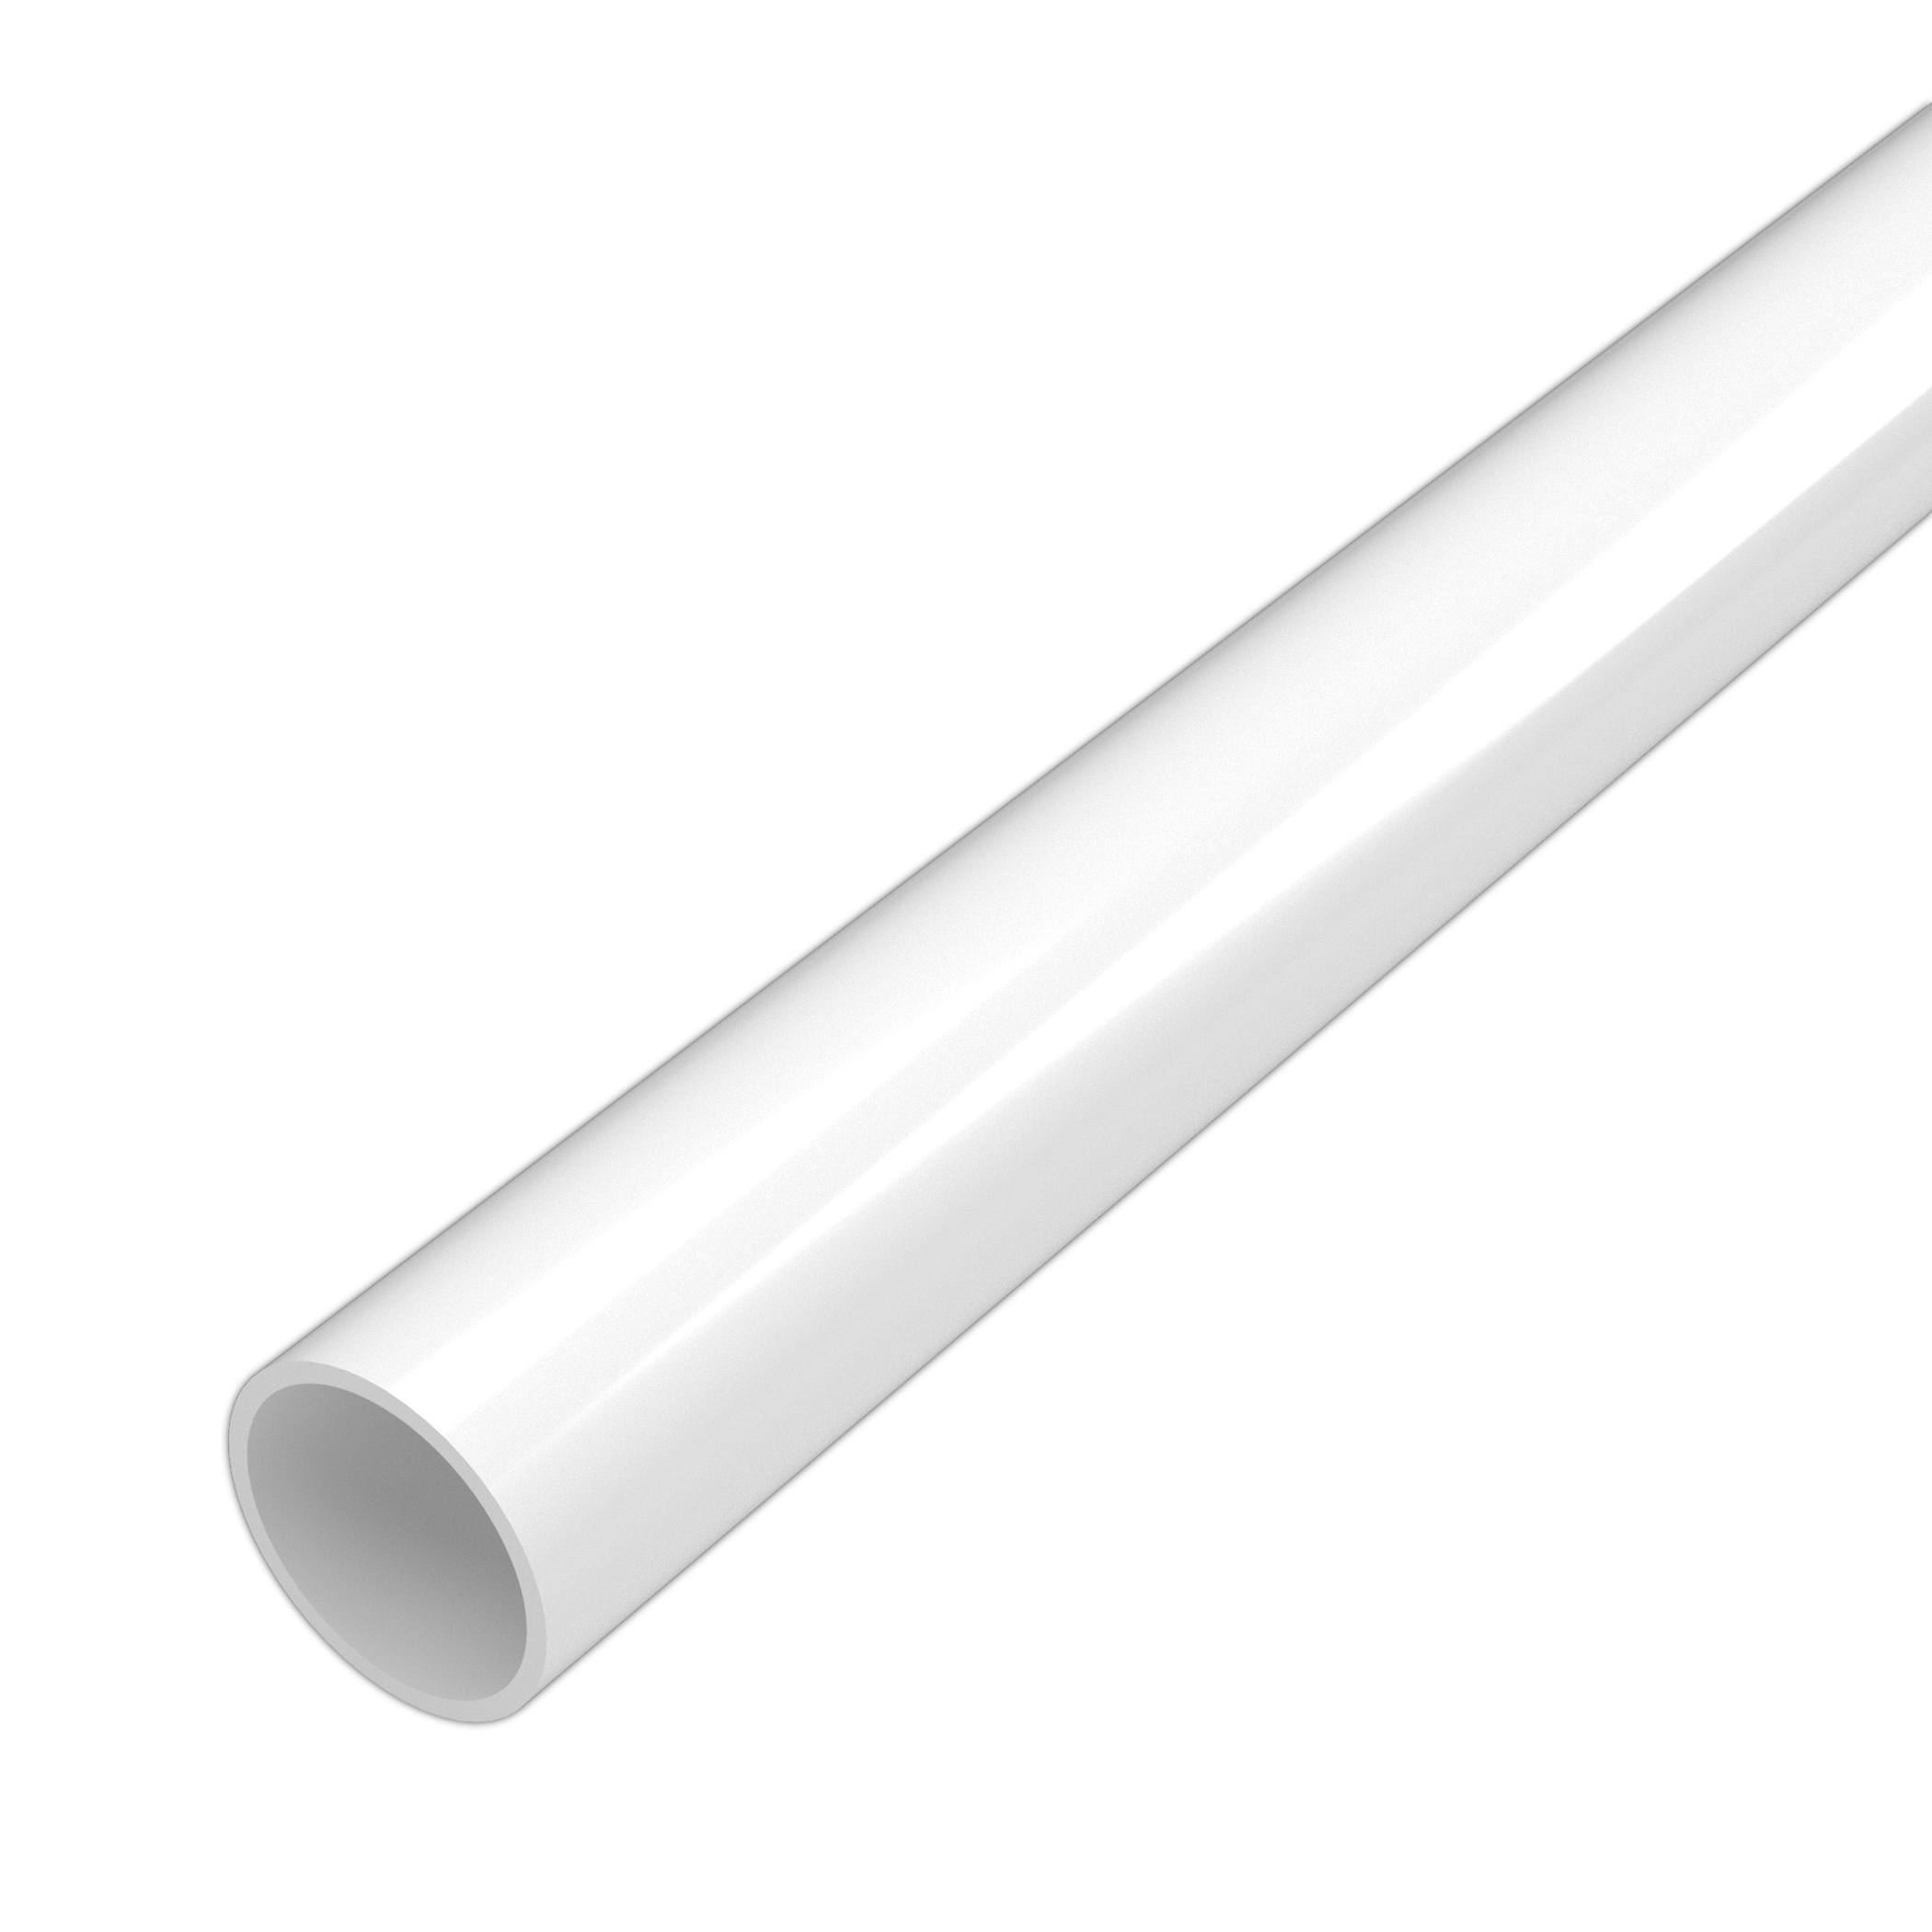 PVC SCH 40 Pipe, 20 ft, Bell End